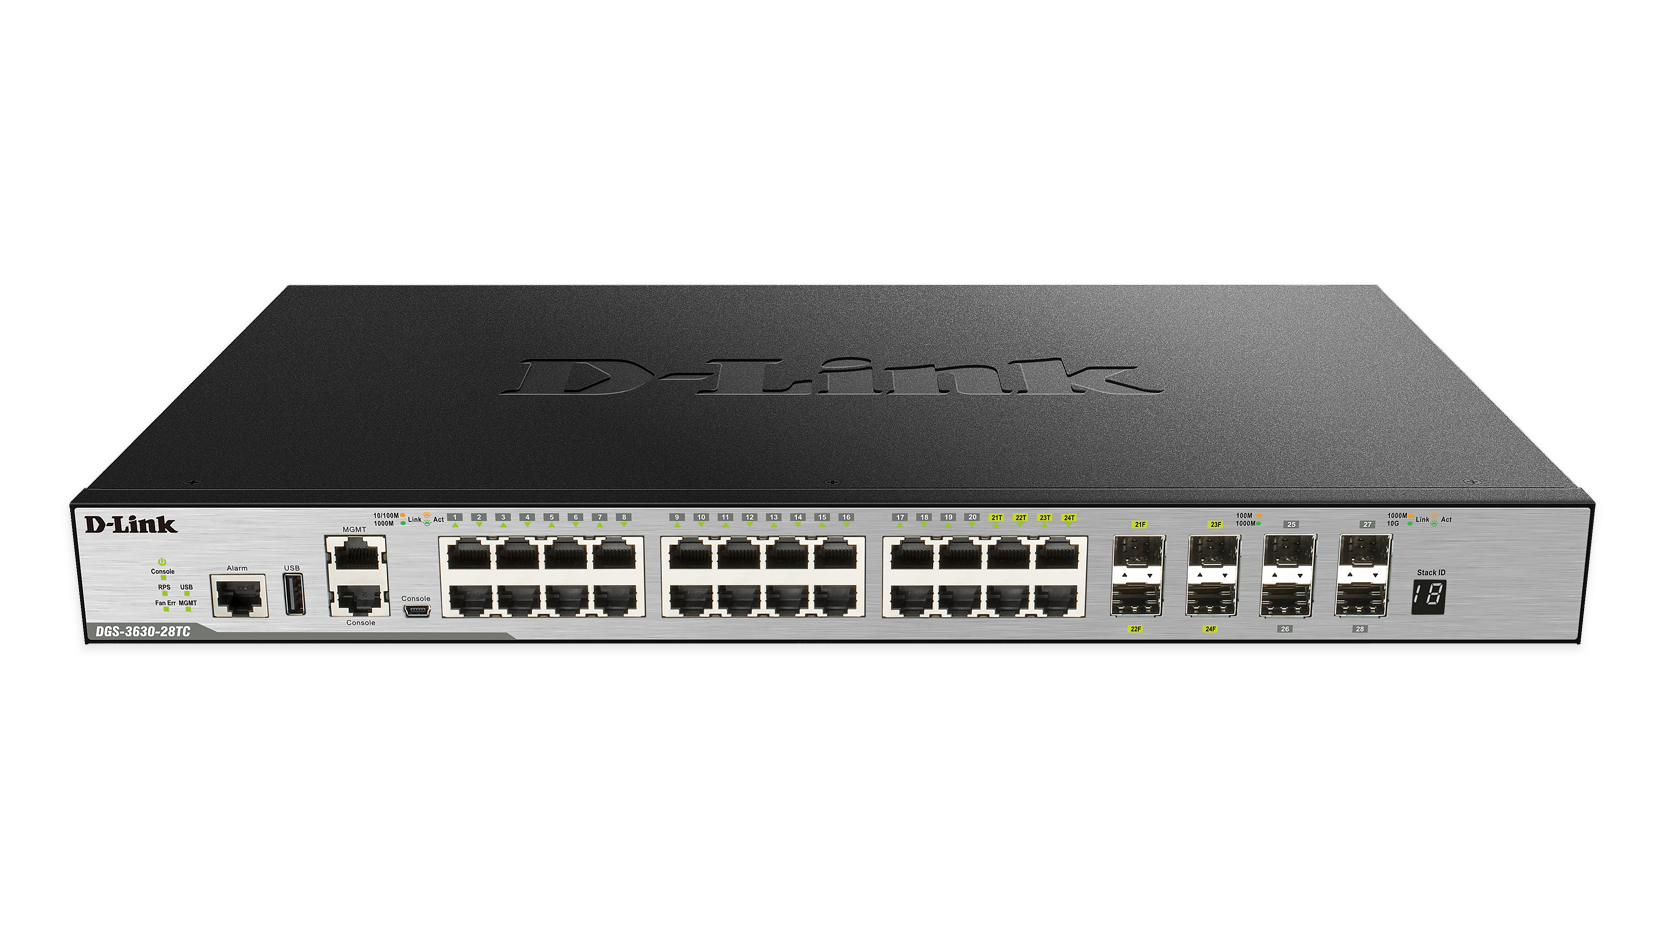 28 Port Layer 3 Stackable Managed Gigabit Switch Including